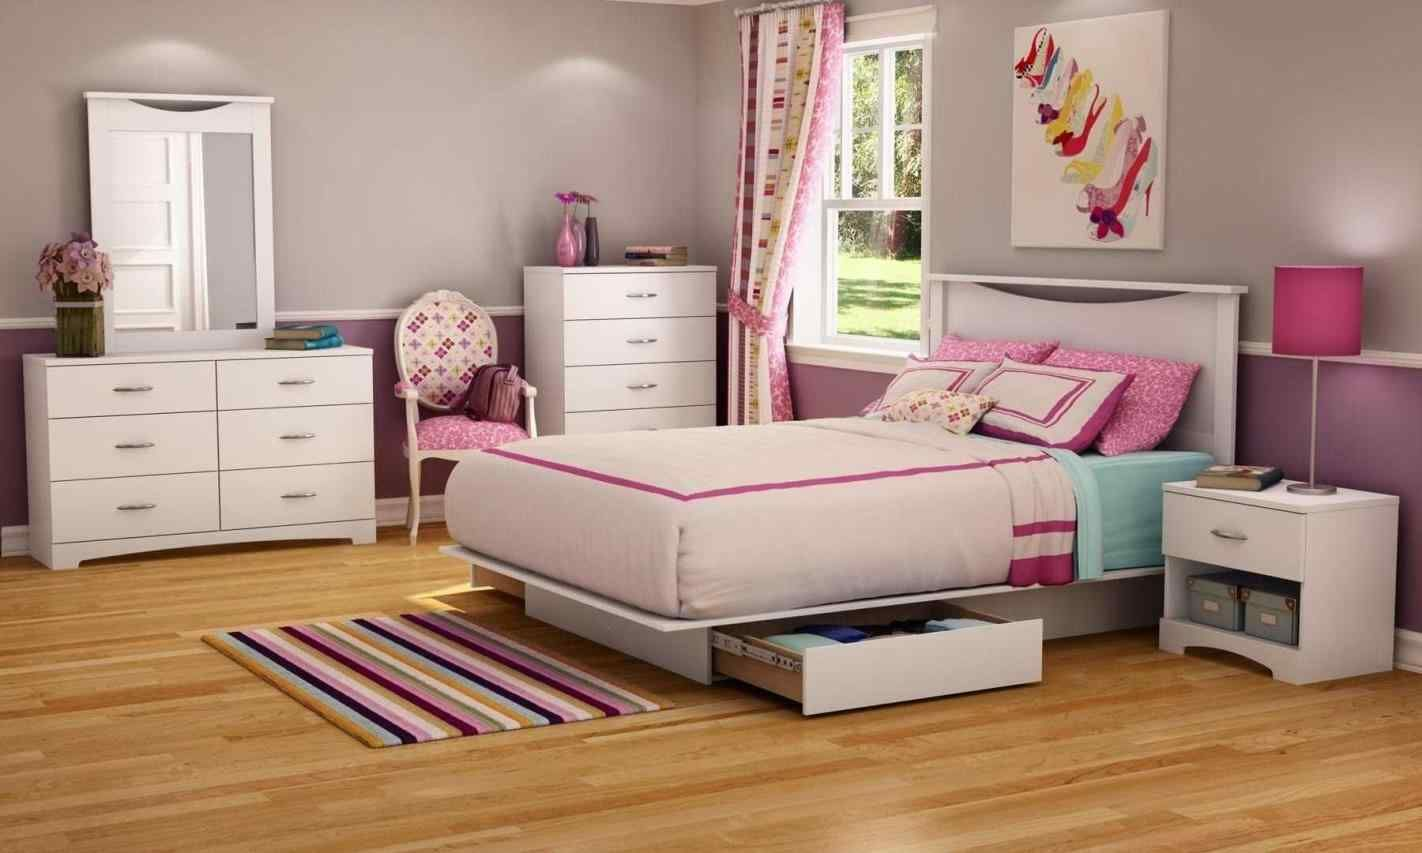 14 top and pretty colors scheme for cozy bedrooms modern on cute bedroom decor ideas for teen romantic bedroom decorating with light and color id=59698